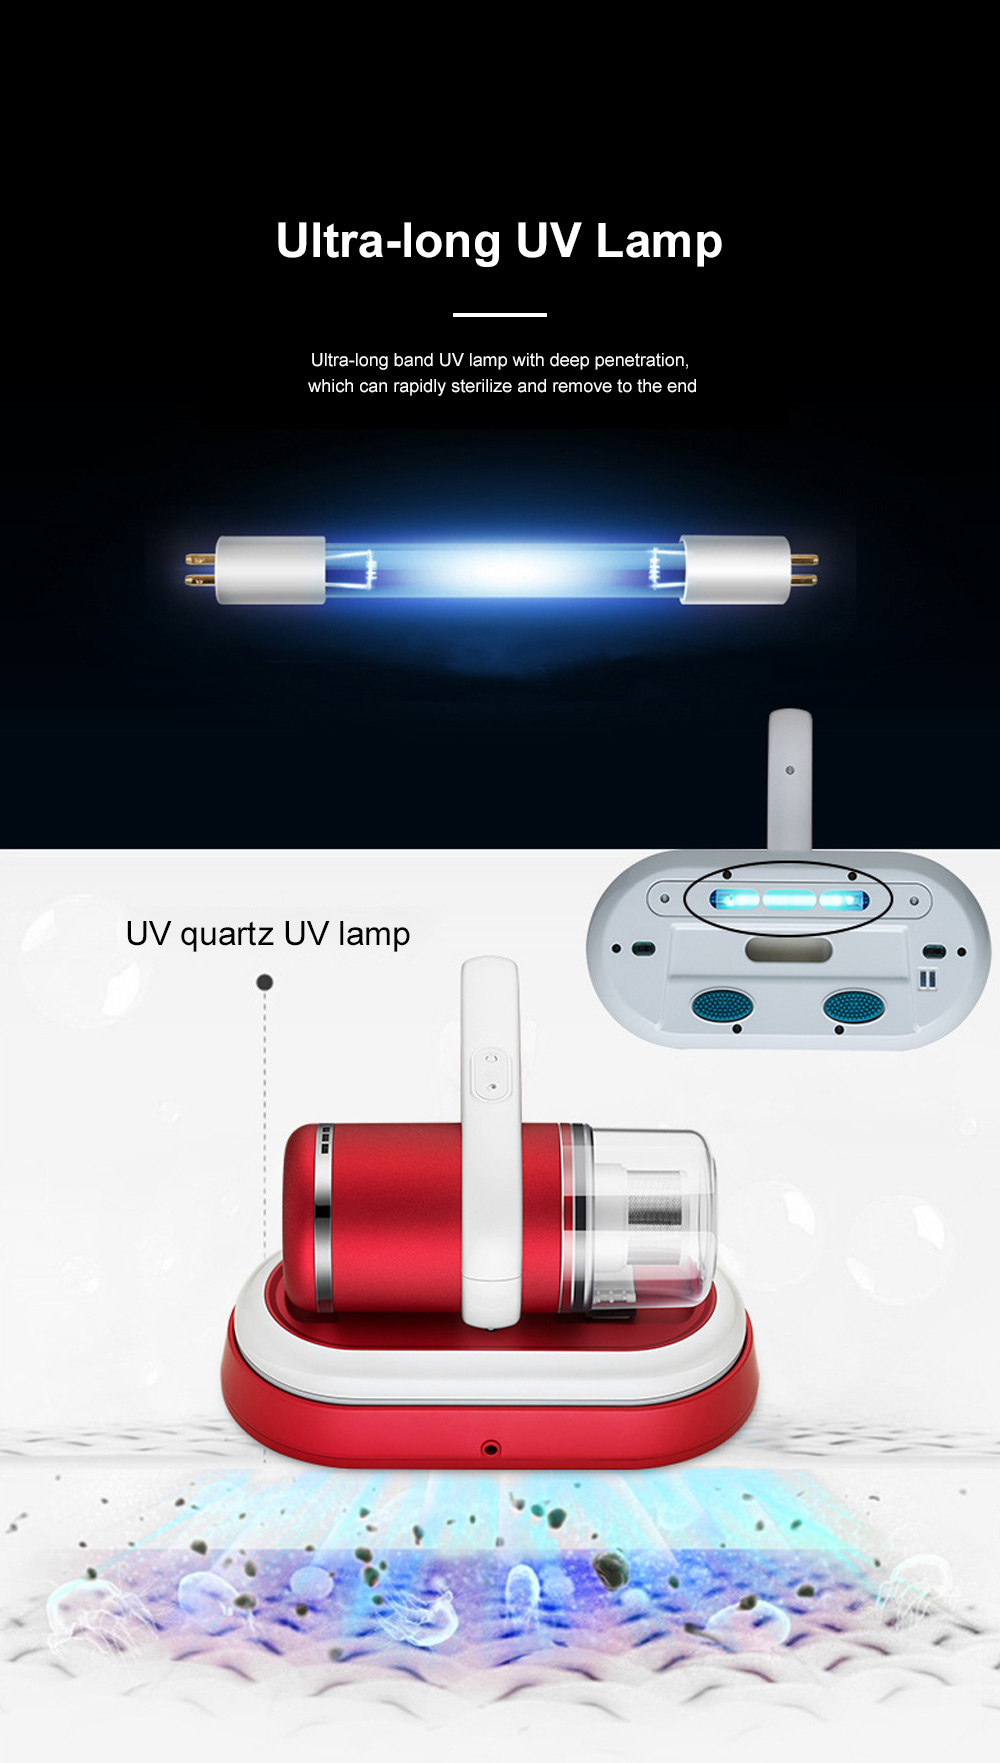 Home Use Wireless Mite Remover Handheld UV Sterilization Cleaner for Bed Bedroom Sofa Clothes Anti Dust Mite Device 3